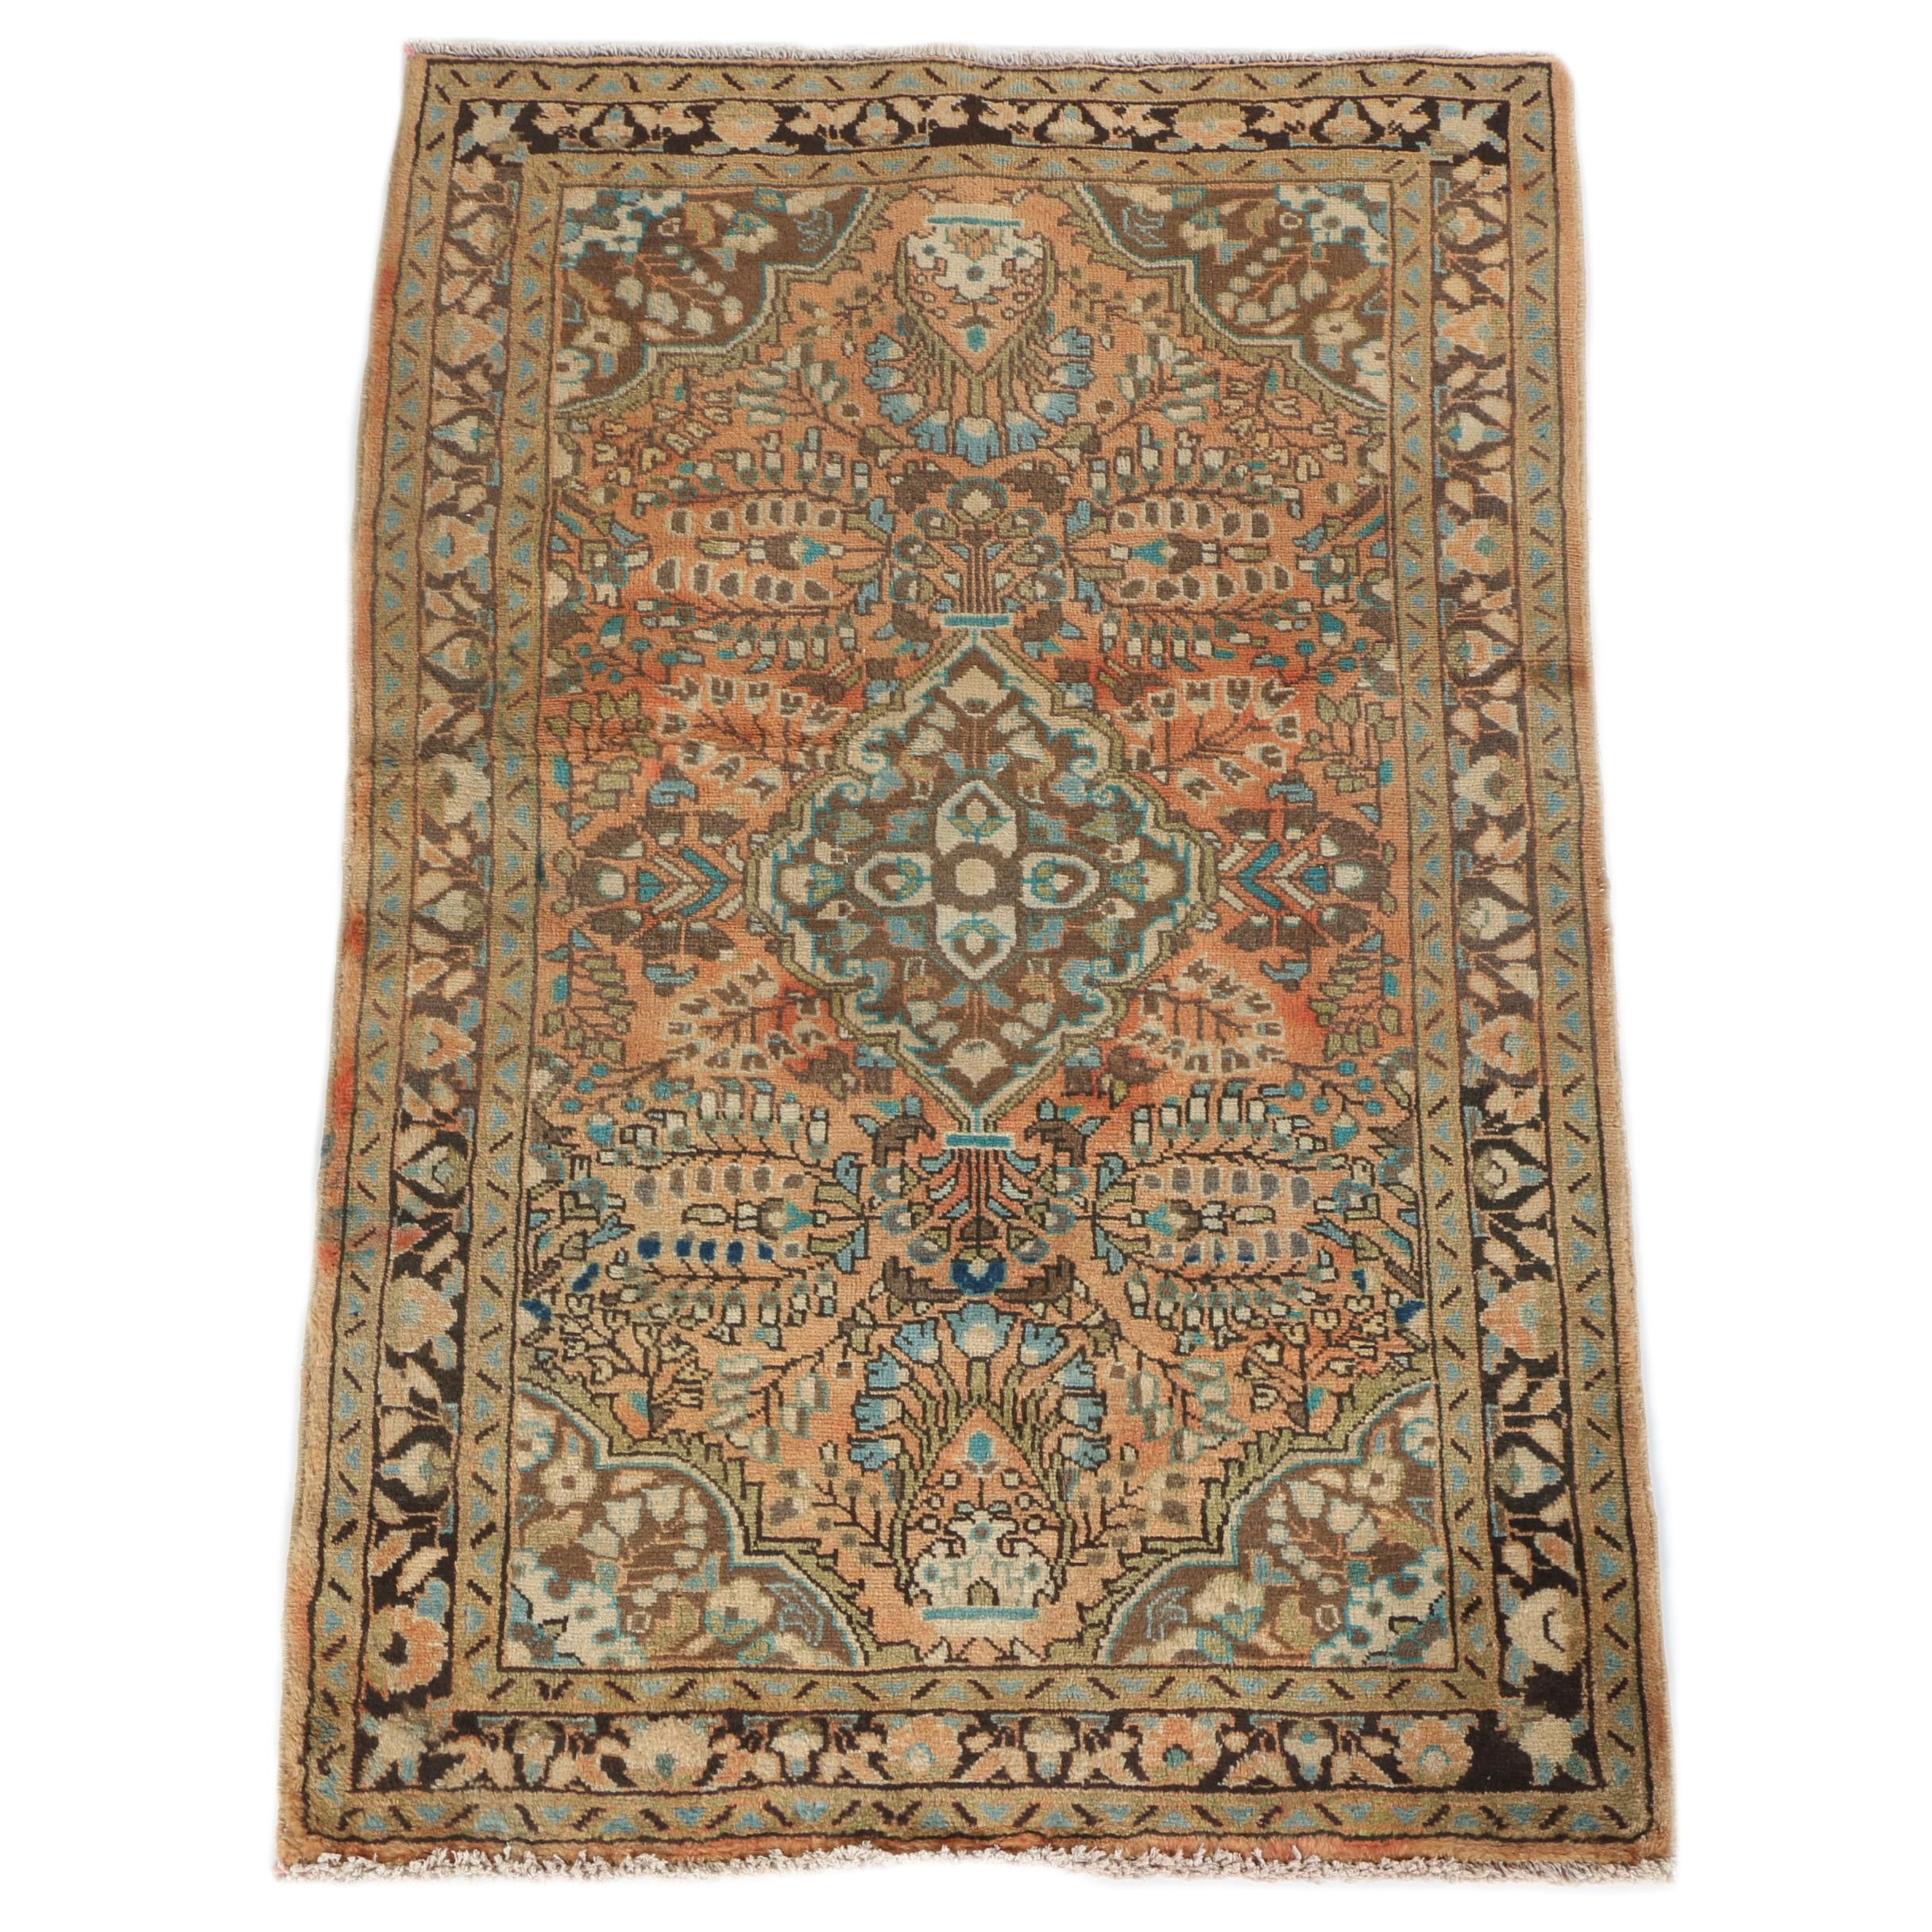 Vintage Hand-Knotted Persian Mehriban Wool Accent Rug